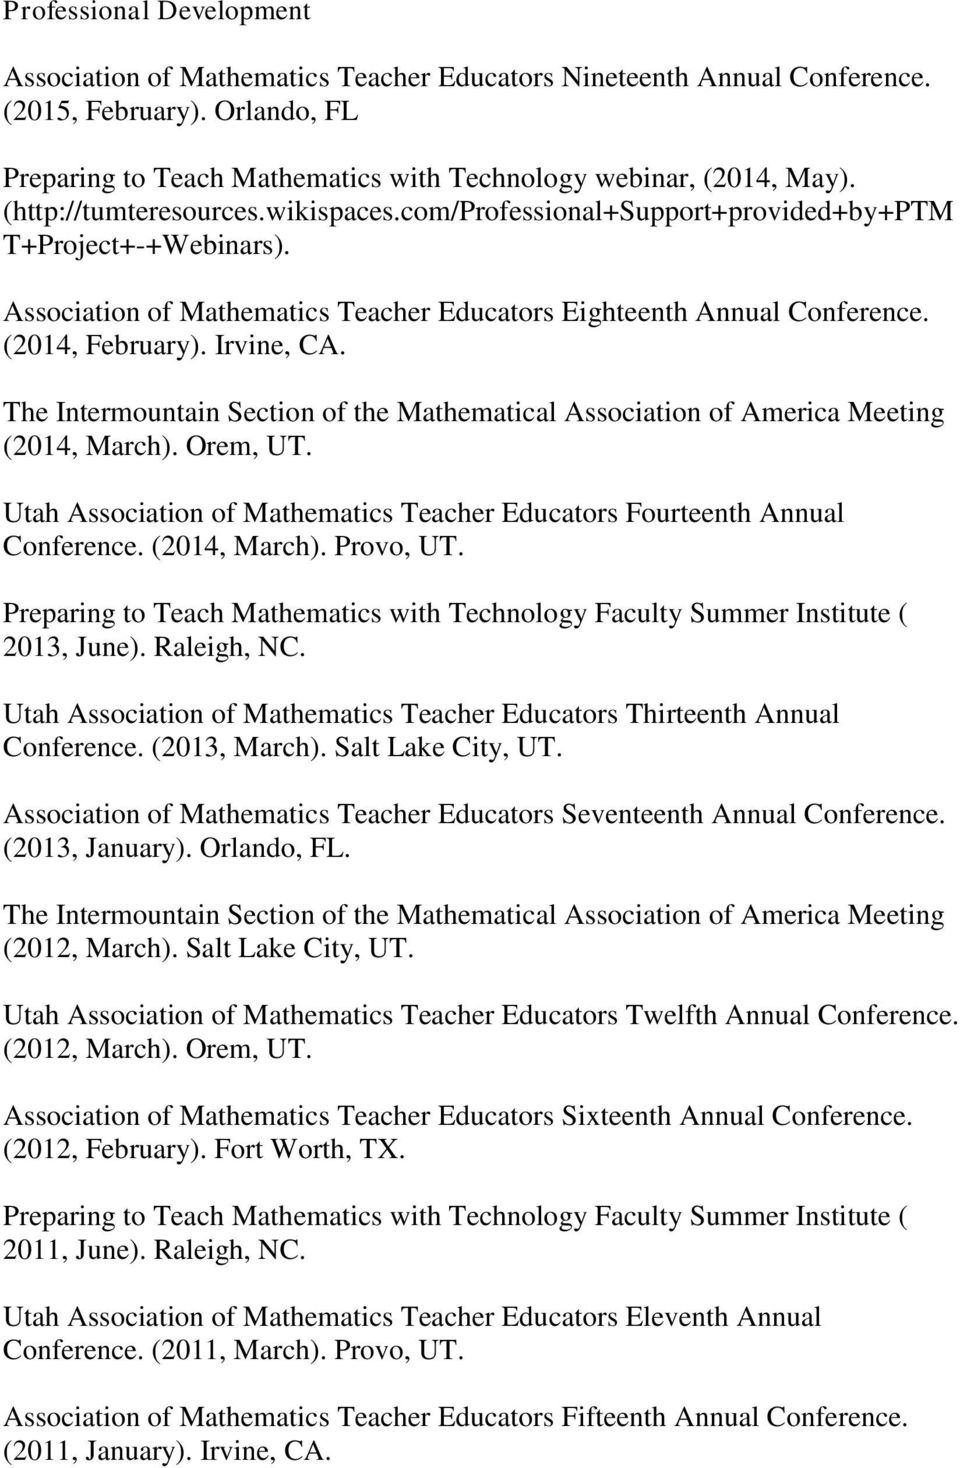 Irvine, CA. The Intermountain Section of the Mathematical Association of America Meeting (2014, March). Orem, UT. Utah Association of Mathematics Teacher Educators Fourteenth Annual Conference.